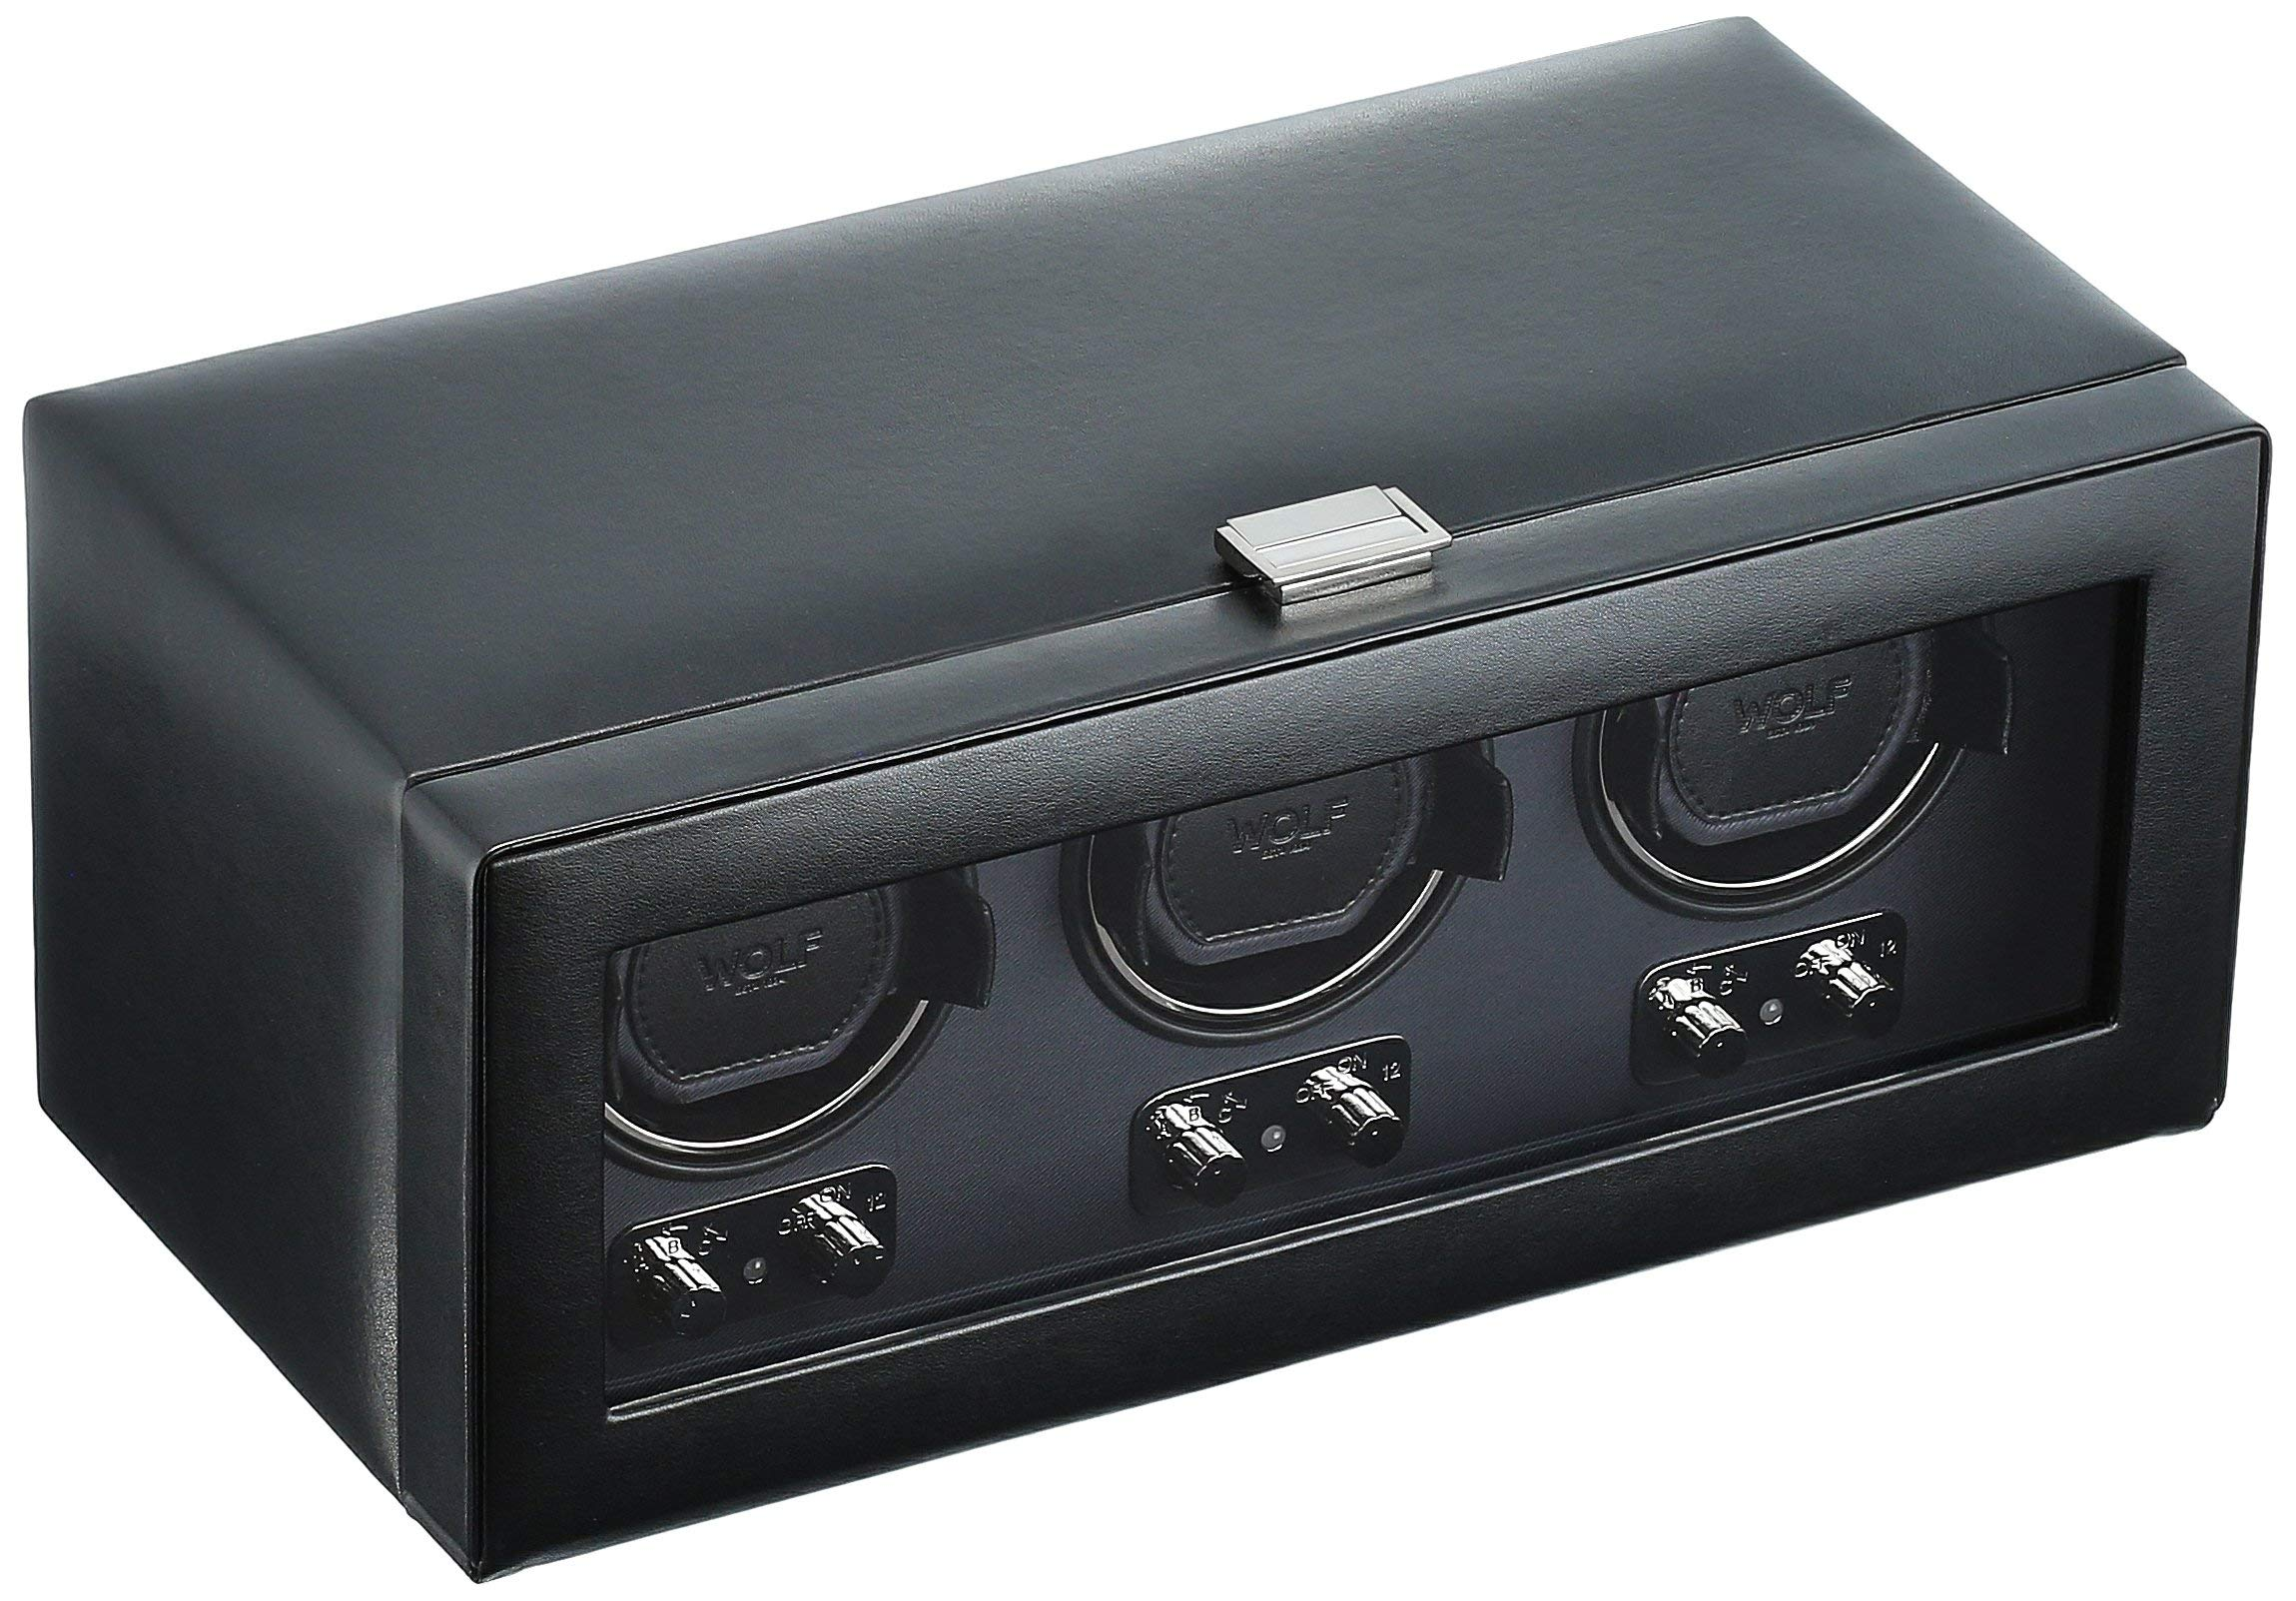 WOLF 270202 Heritage Triple Watch Winder with Cover, Black by WOLF